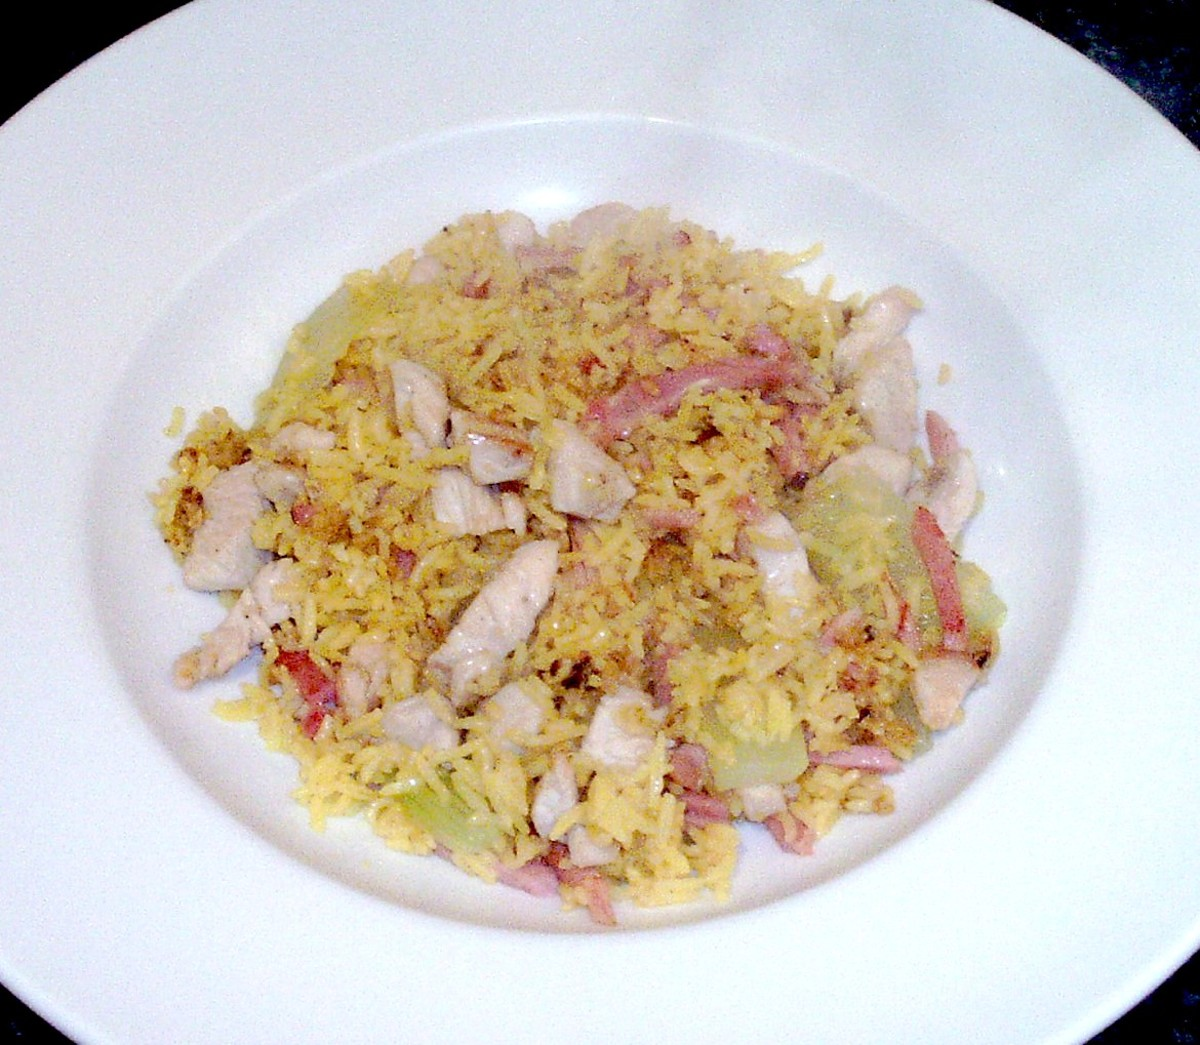 Celtuce, chicken and ham fried rice isplated